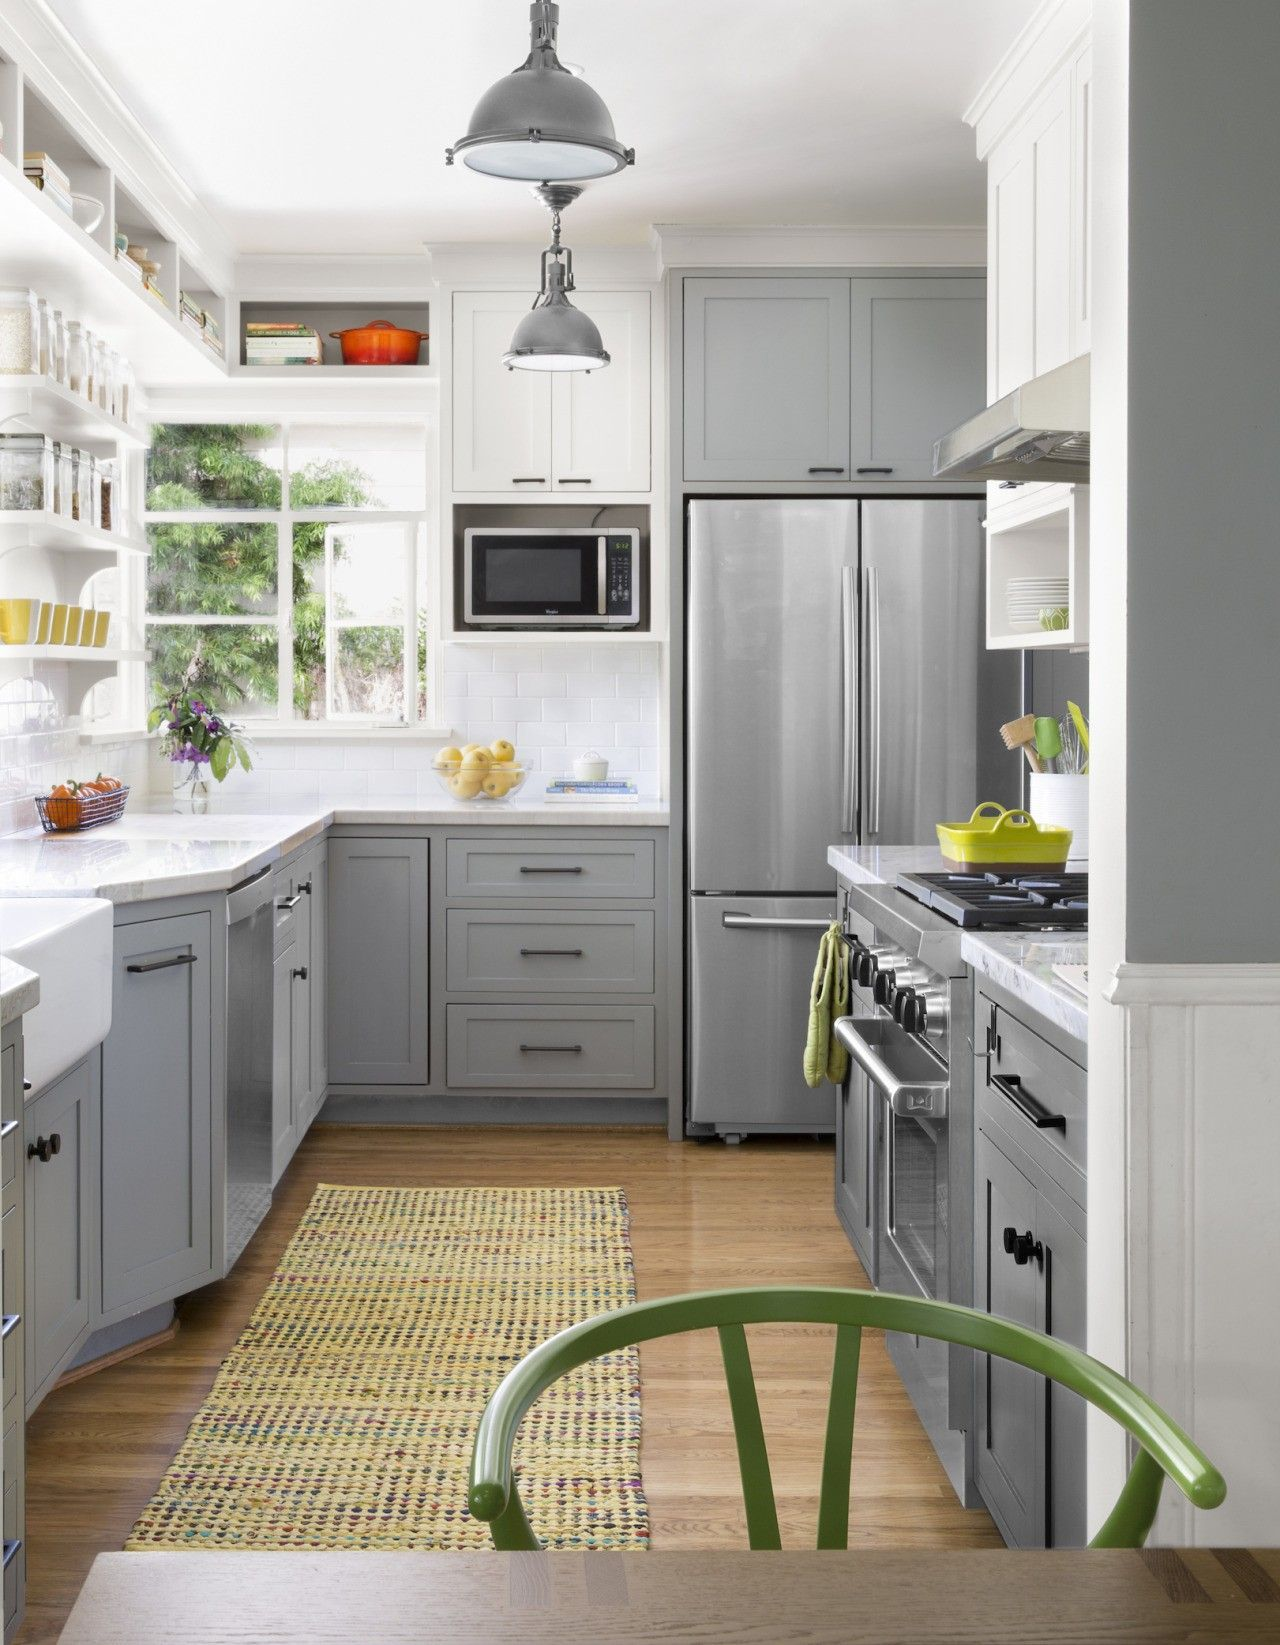 galley kitchen remodel ideas small galley kitchen design makeovers and plans galley on kitchen remodel galley style id=88788